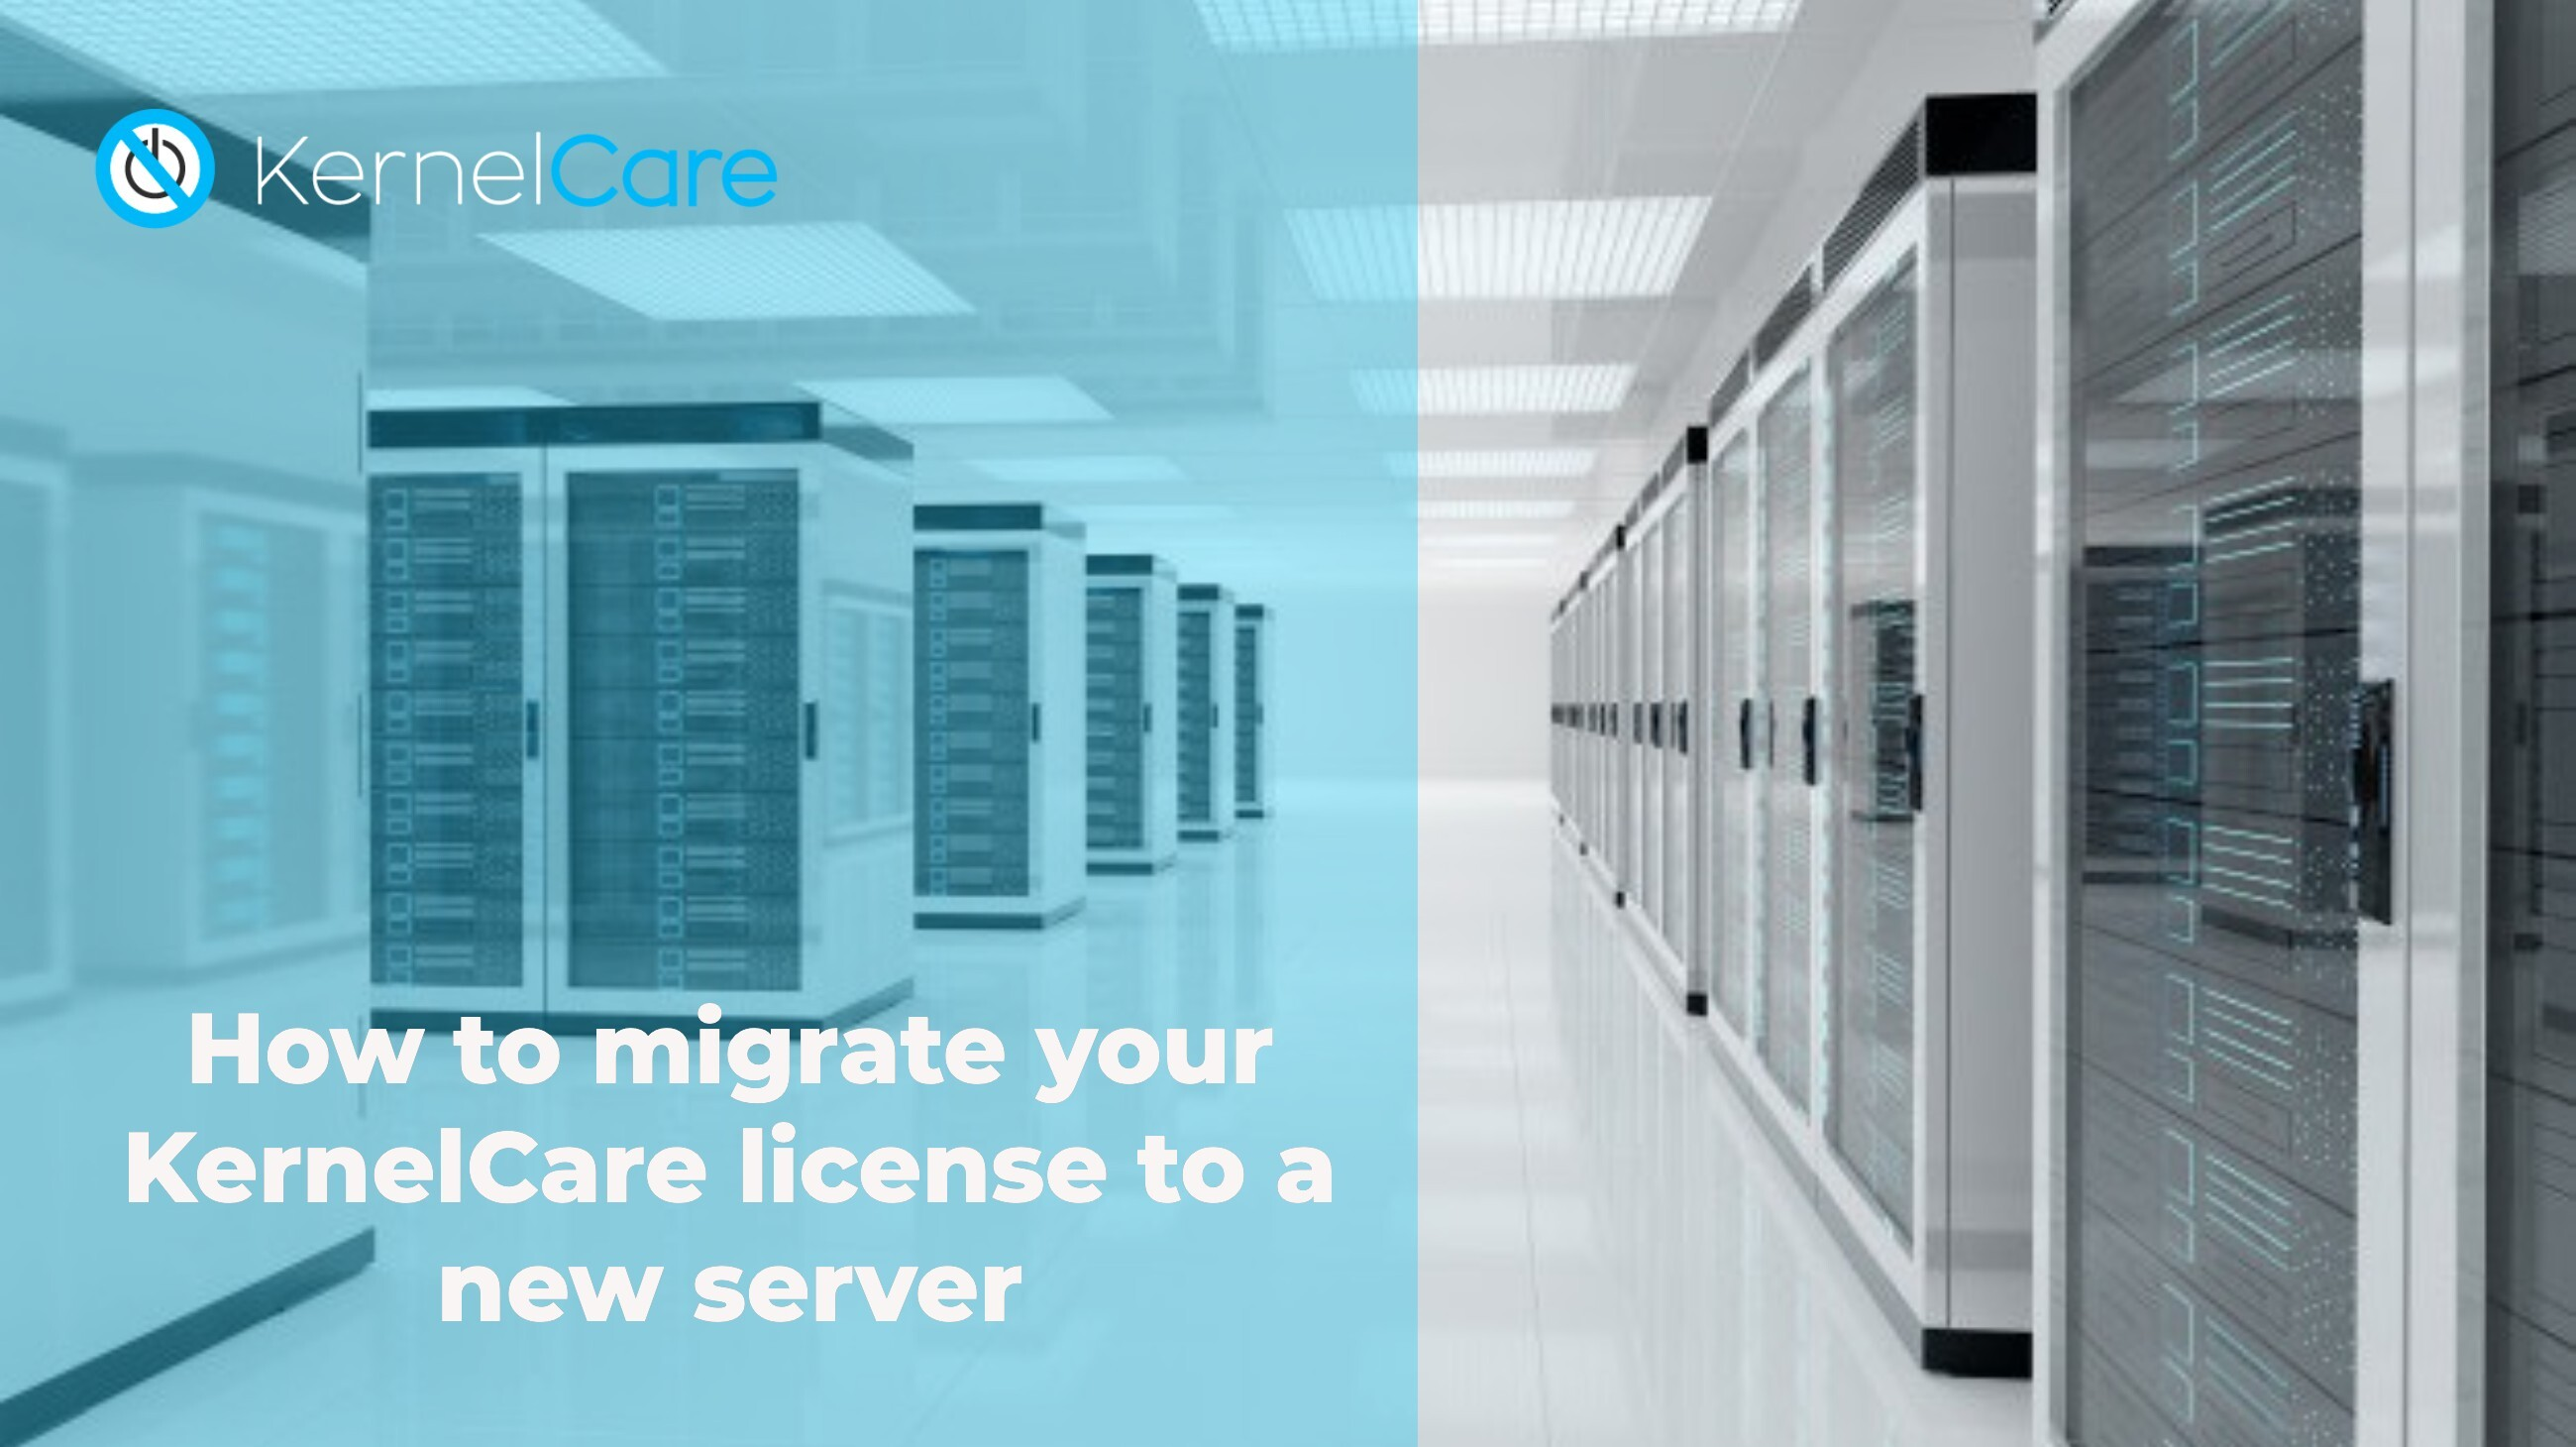 How to migrate your KernelCare license to a new server